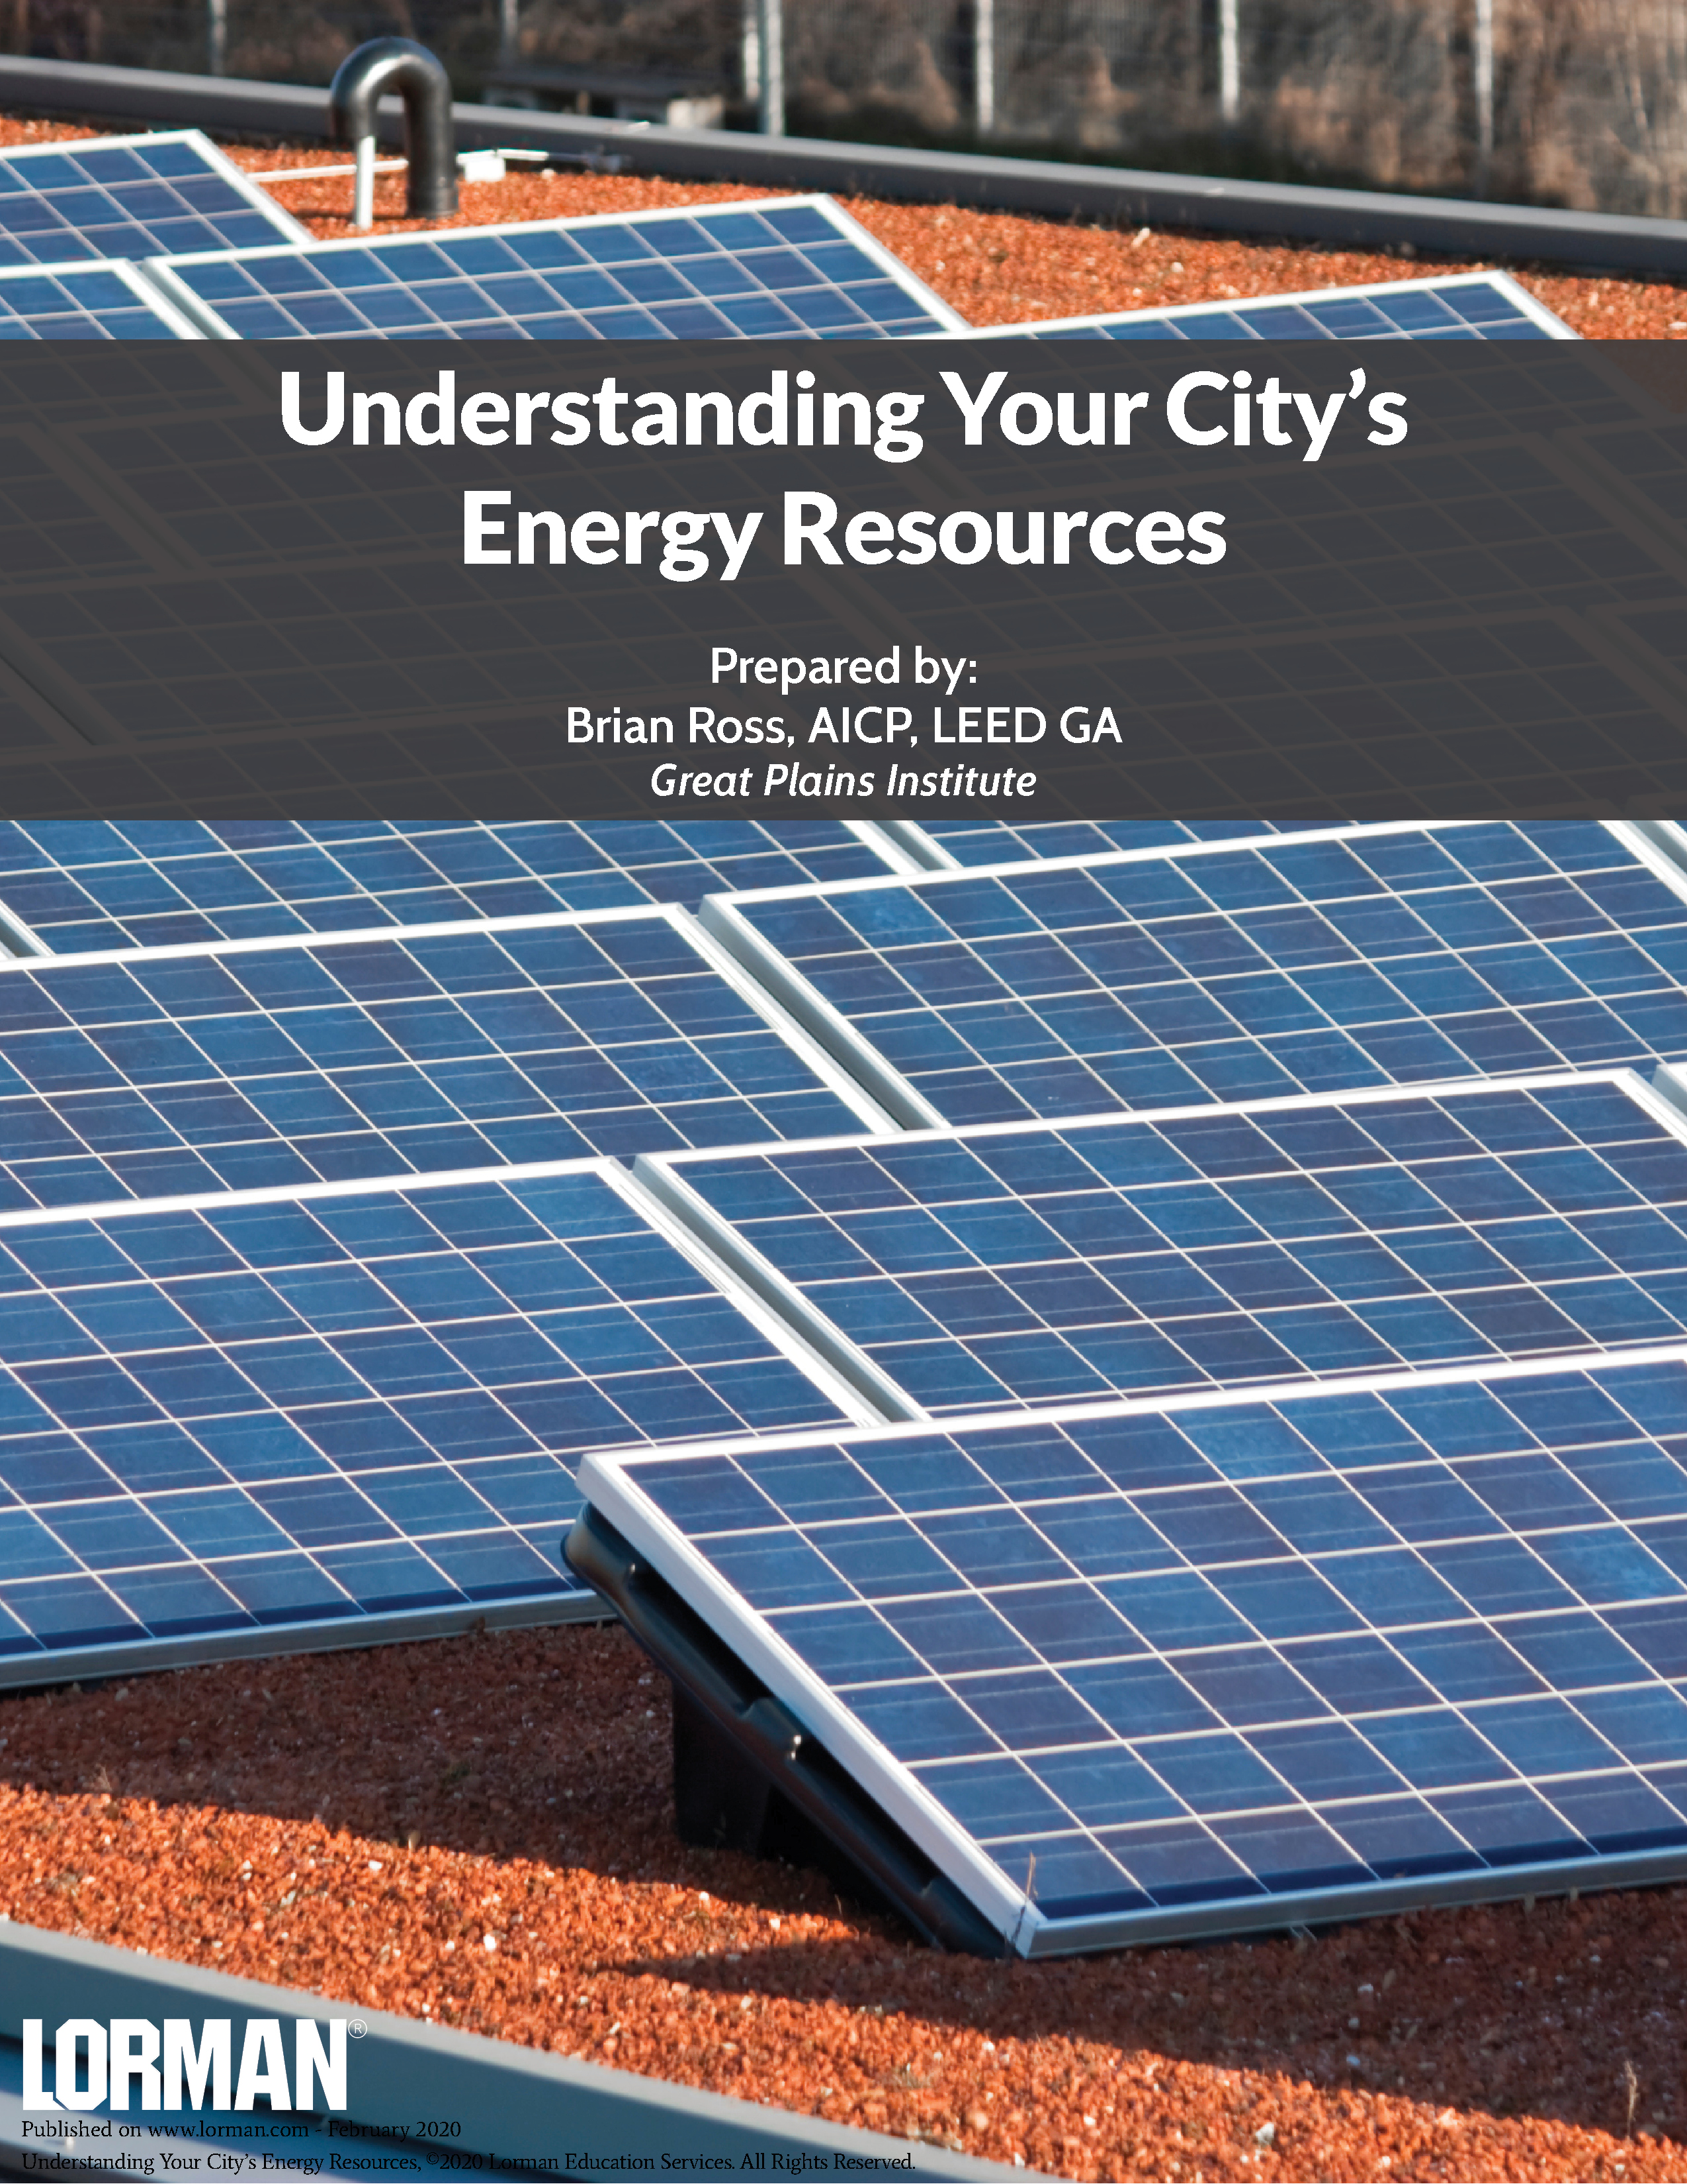 Understanding Your City's Energy Resources